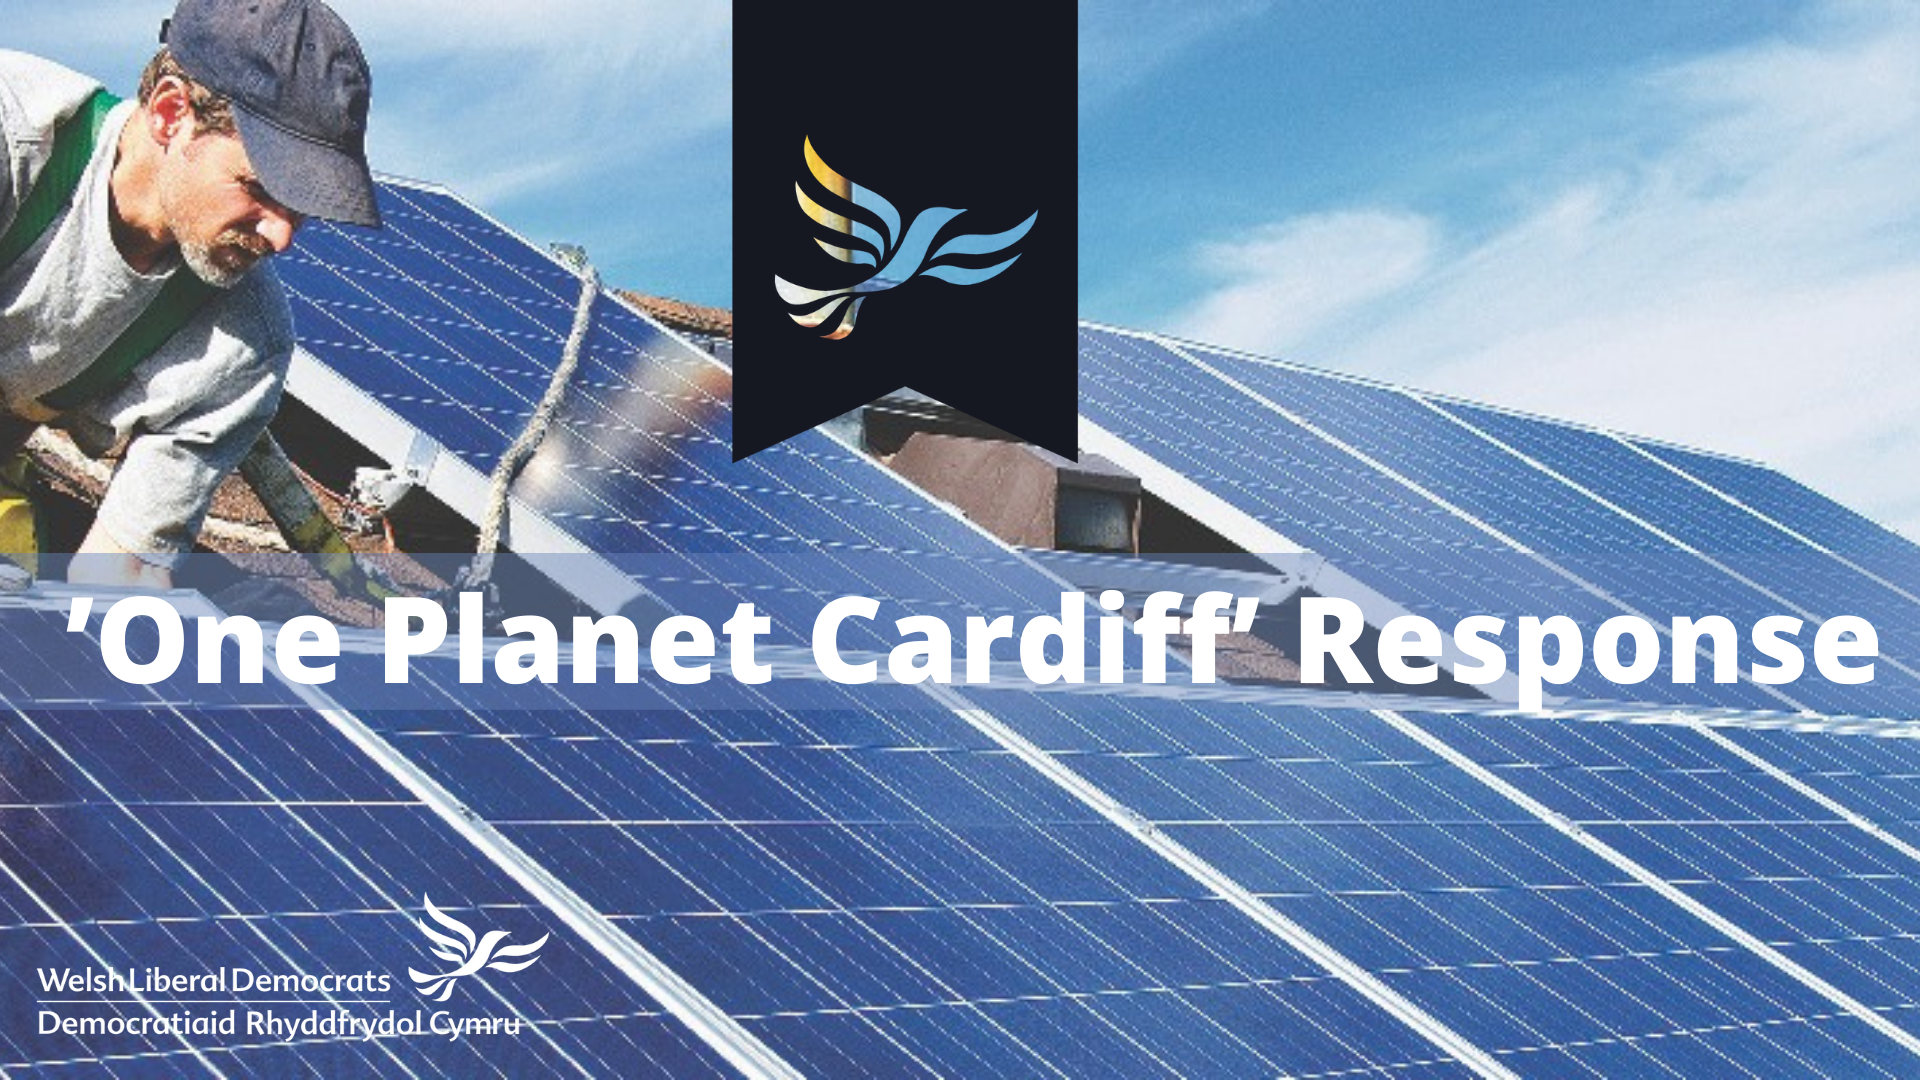 Cardiff Lib Dems respond to One Planet Cardiff